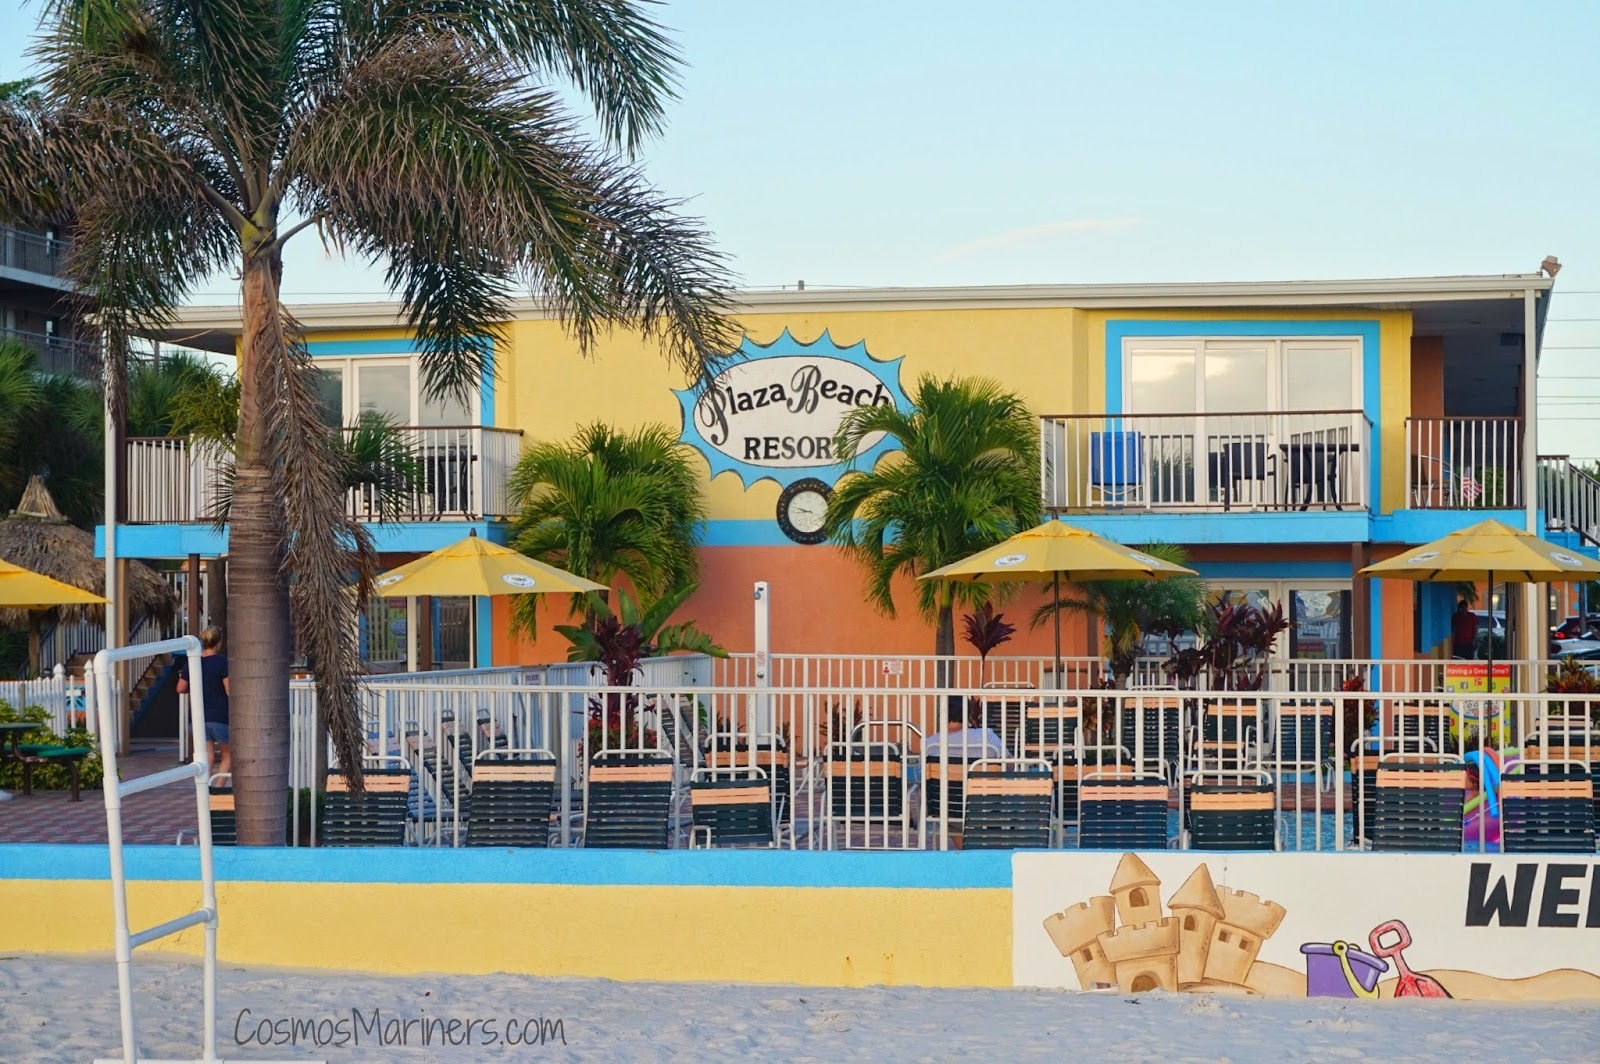 Plaza Beach Hotel St Pete Florida Cosmosmariners